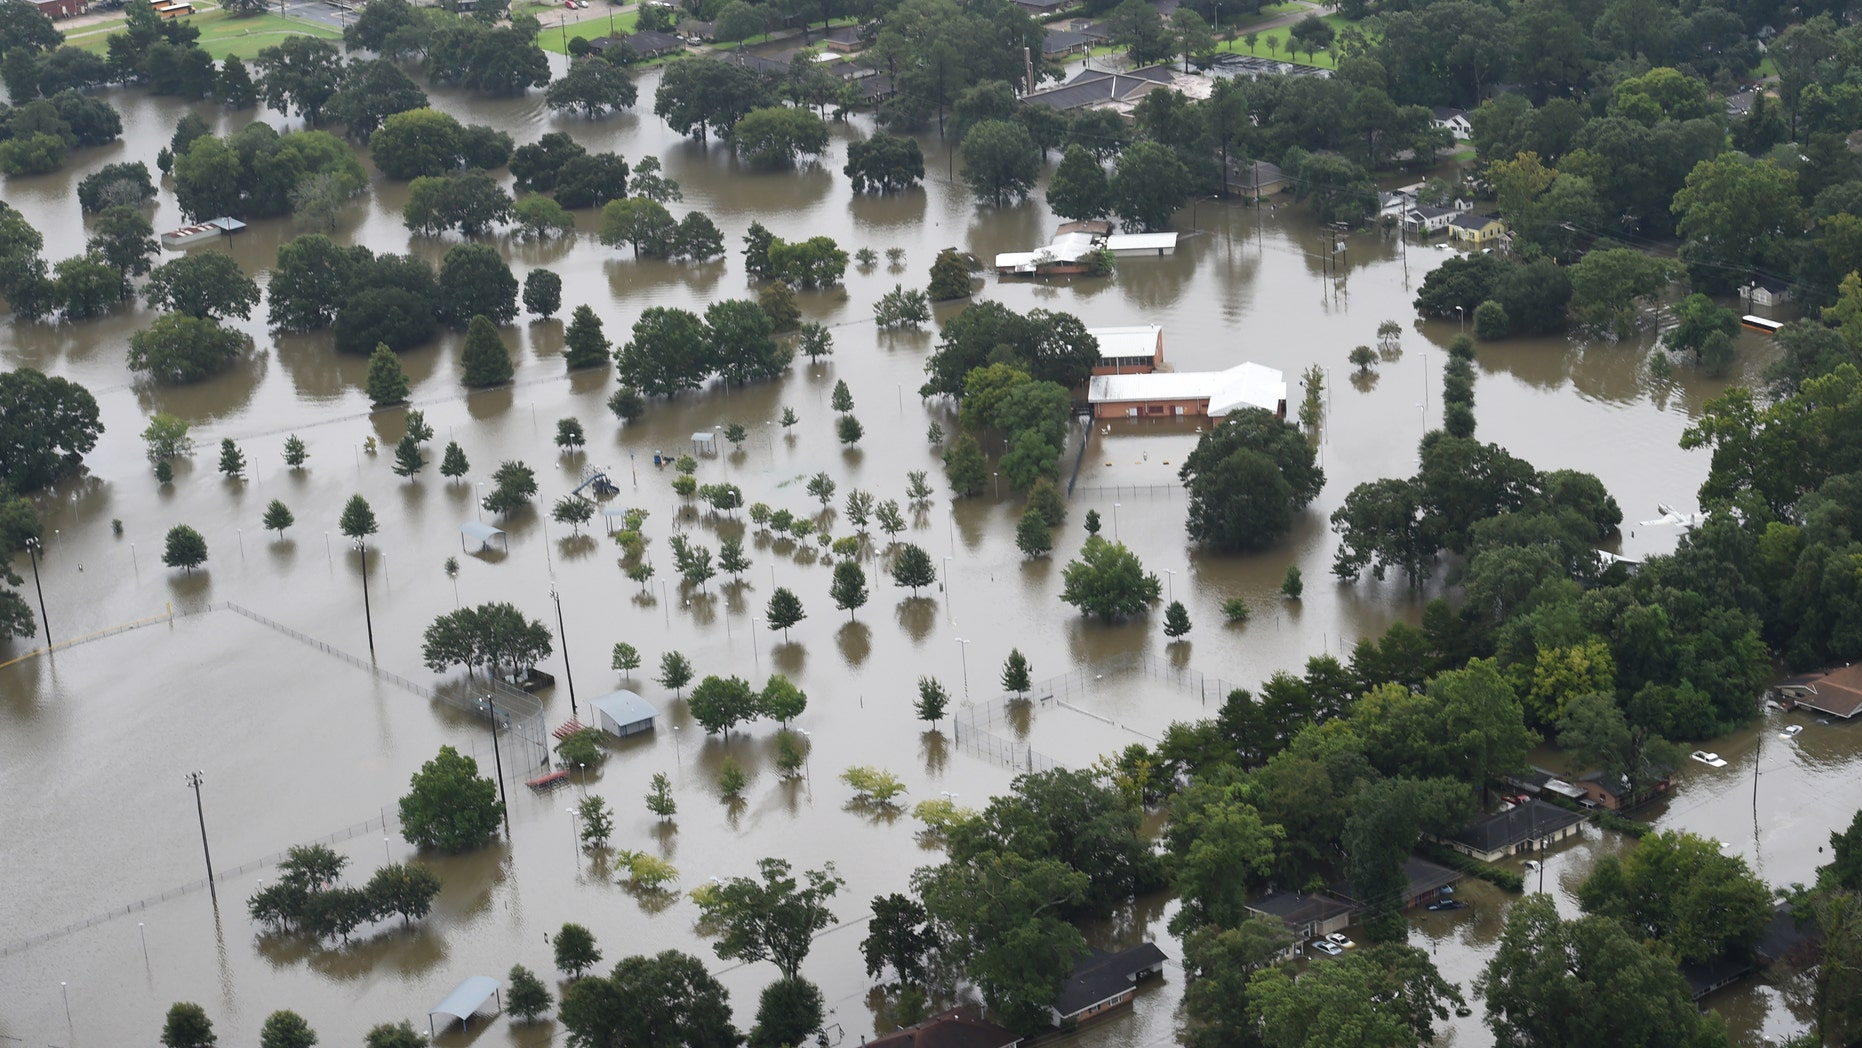 This aerial image shows flooded areas of North Baton Rouge, La., Saturday, Aug. 13, 2016. (Patrick Dennis/The Advocate via AP)